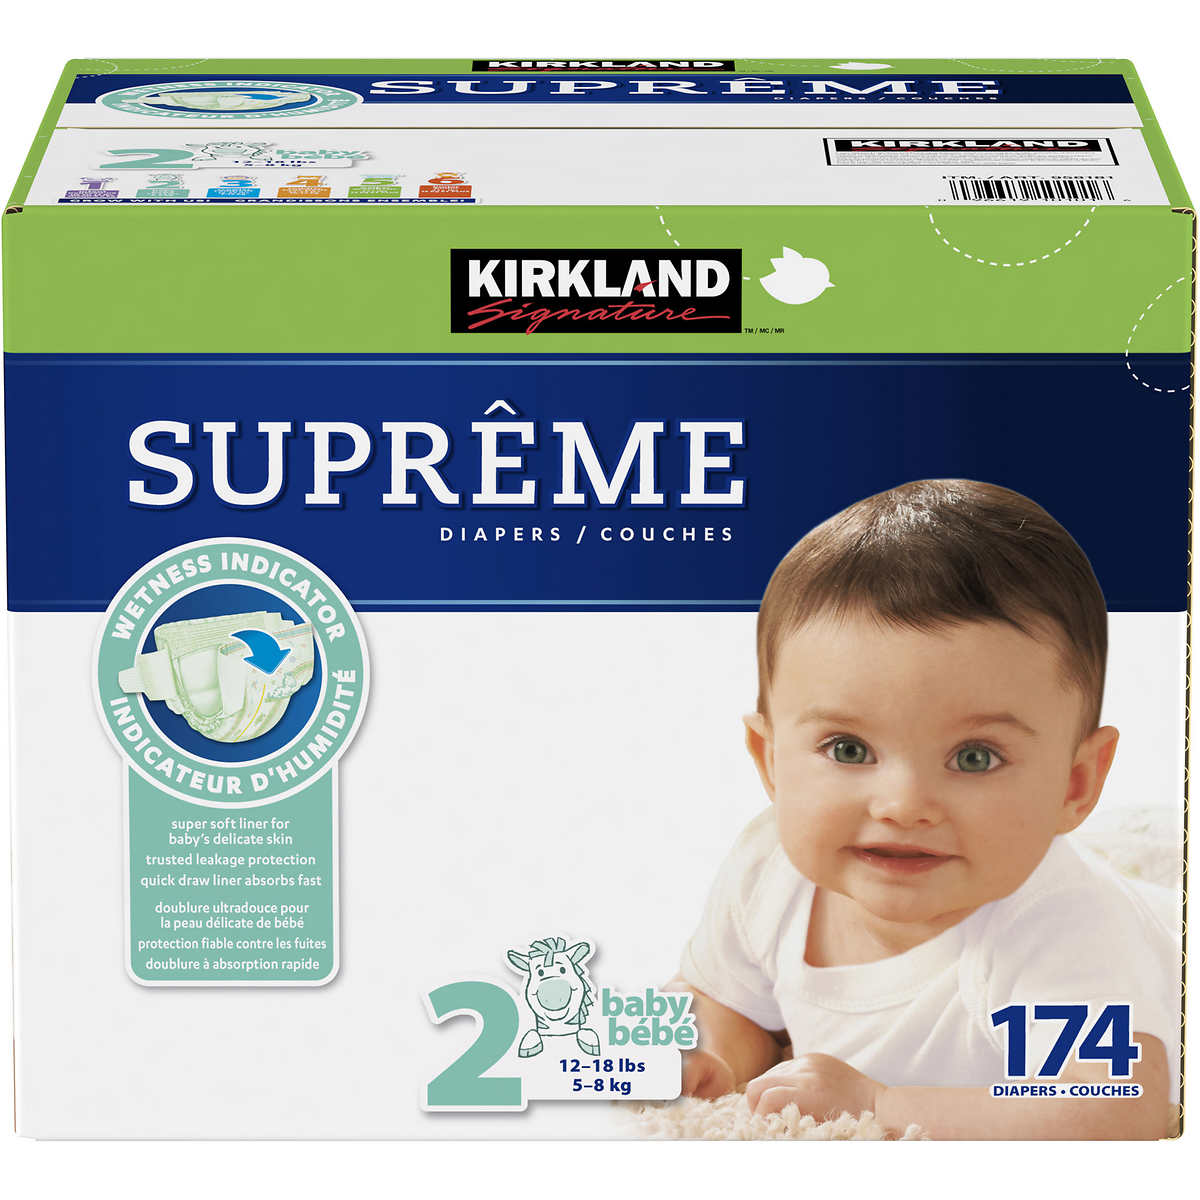 . Kirkland Signature Supreme Diapers Size 2  174 count